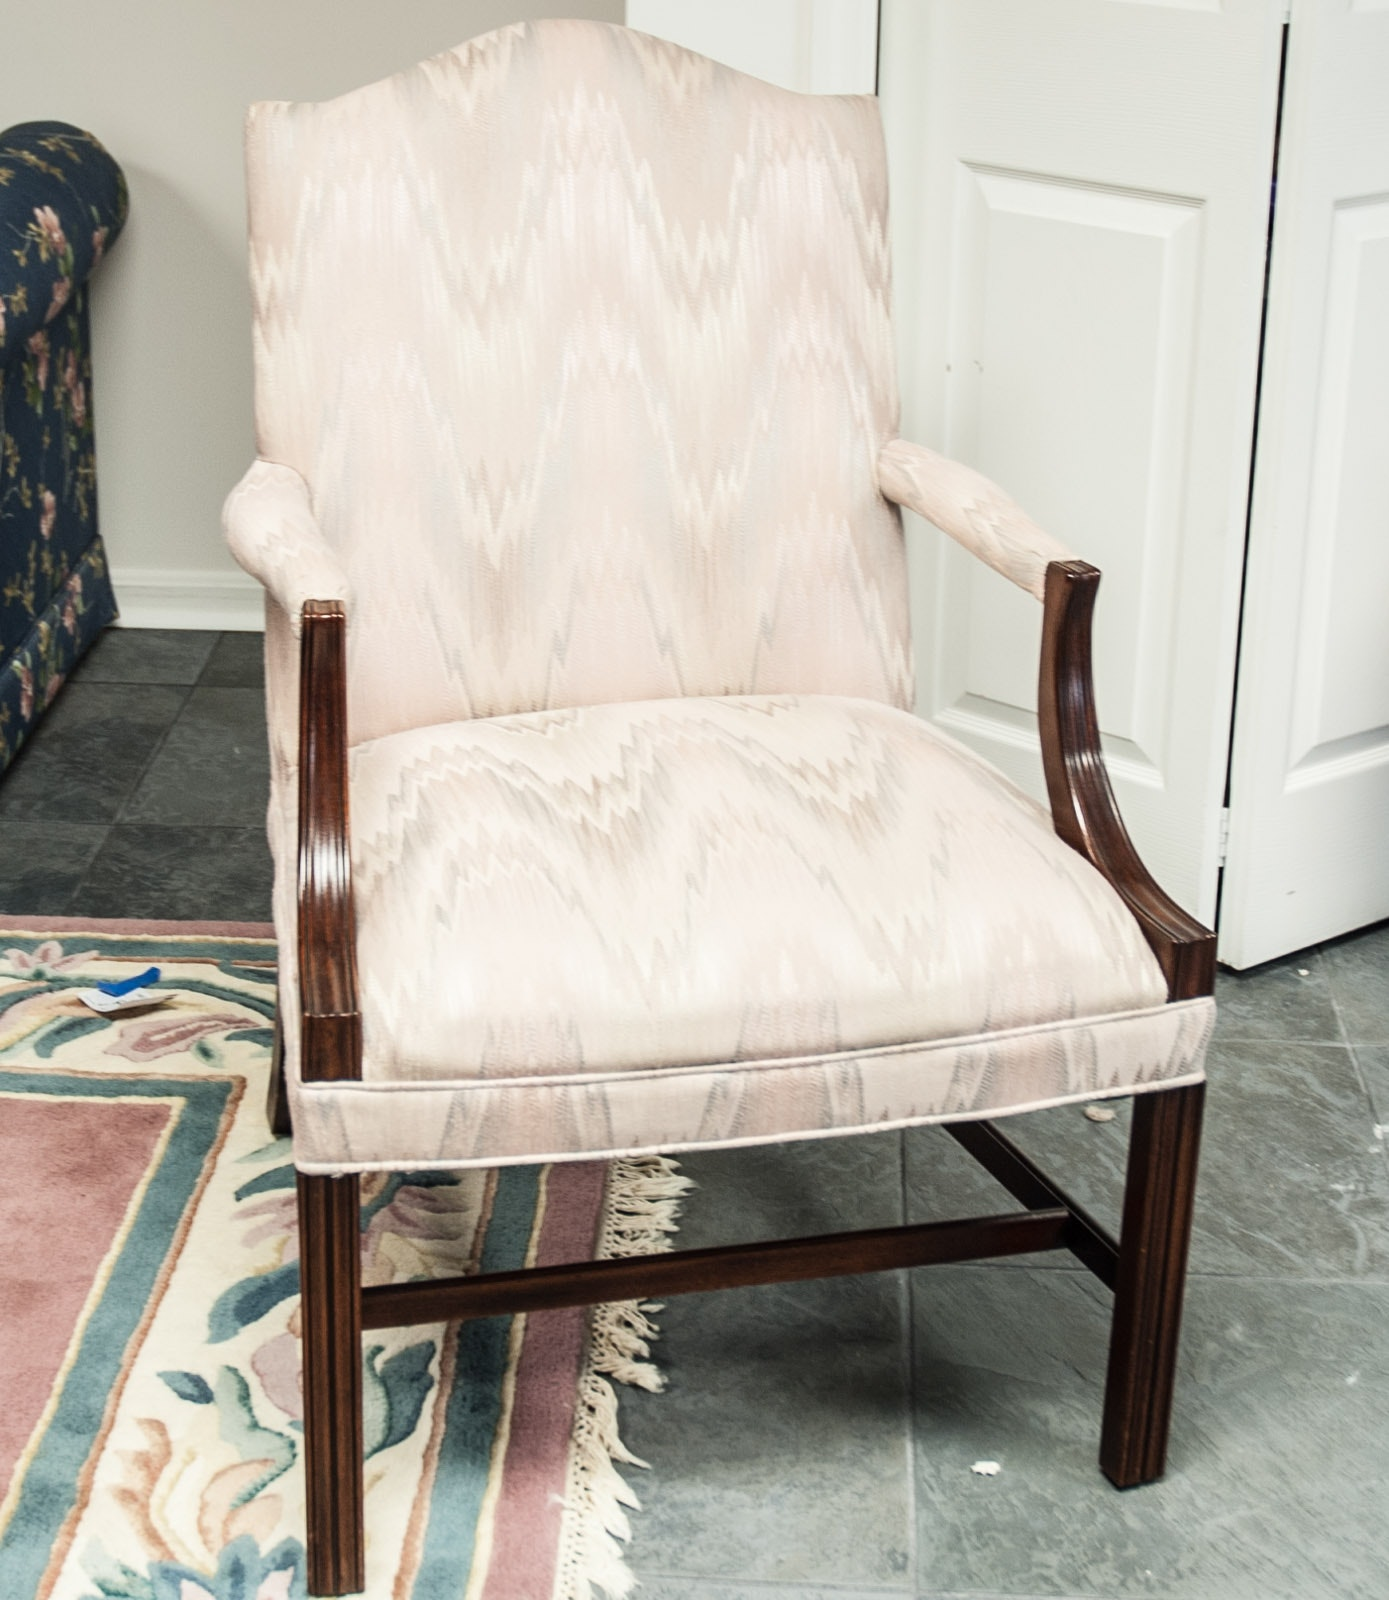 Armchair from Leugers Furniture Company